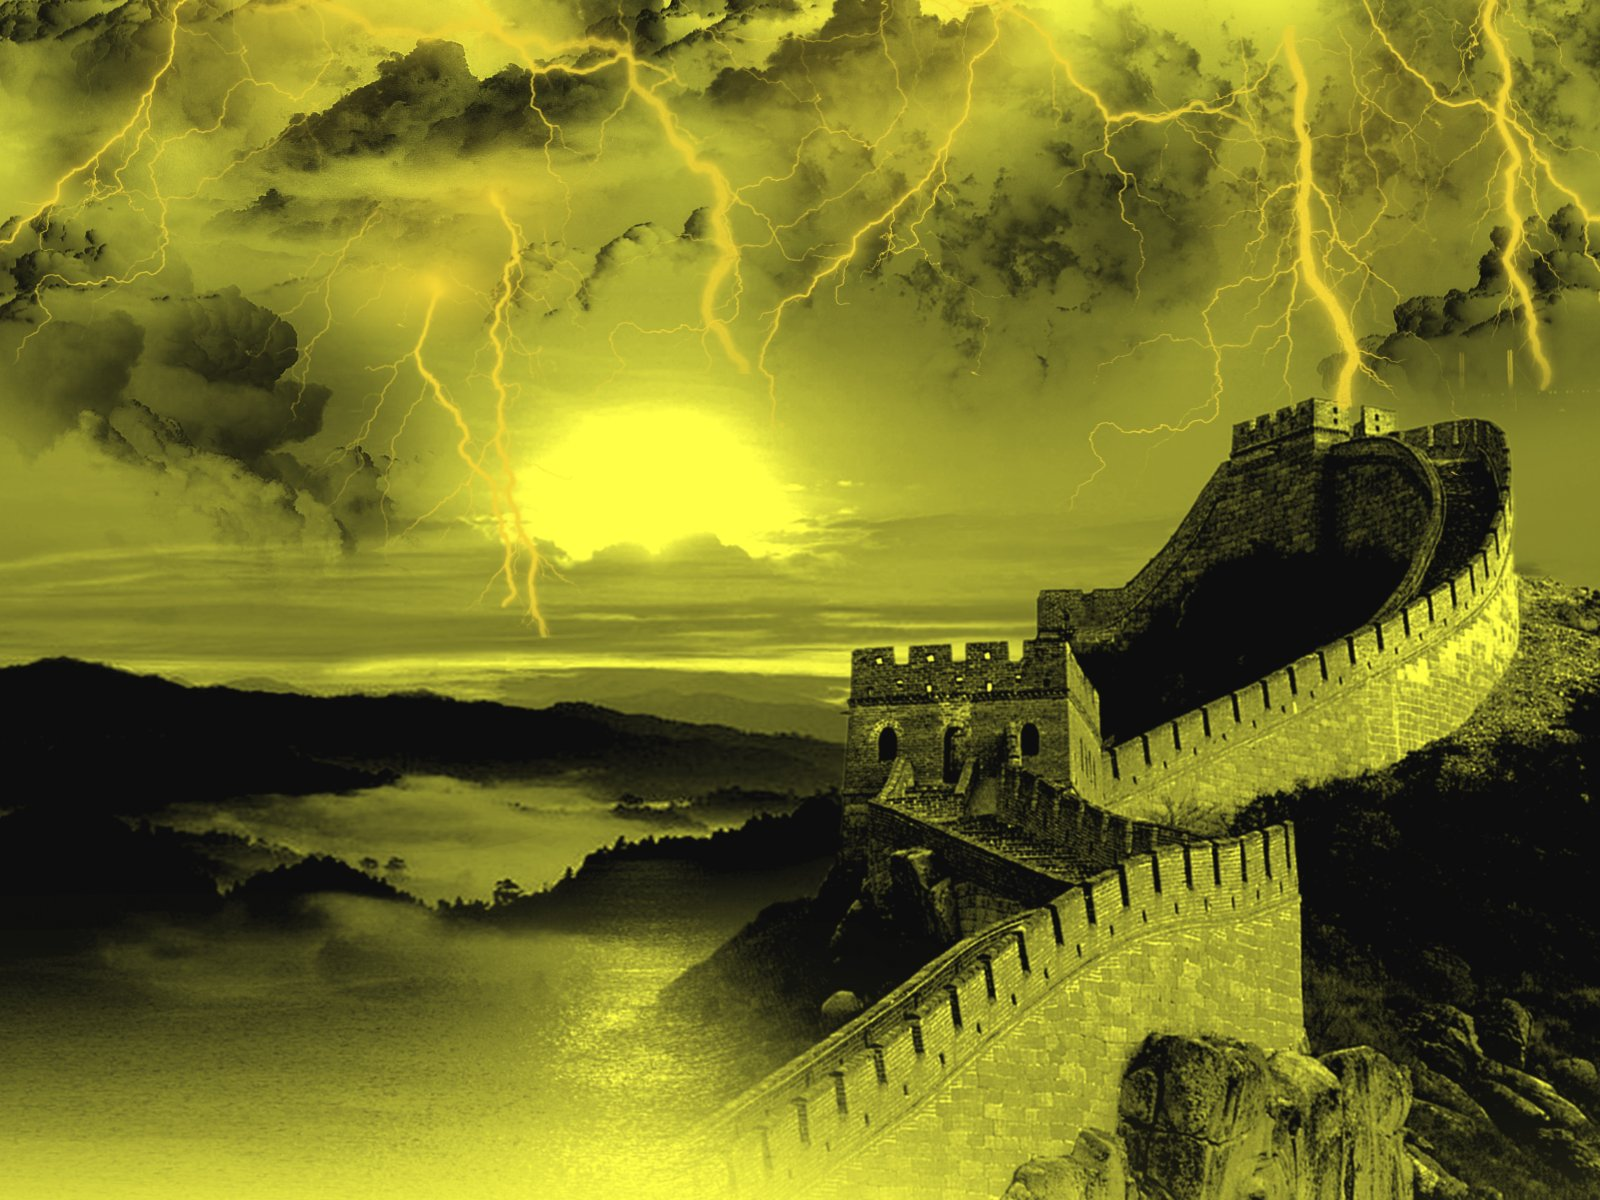 Great Wall of China Wallpaper and Background Image 1600x1200 1600x1200